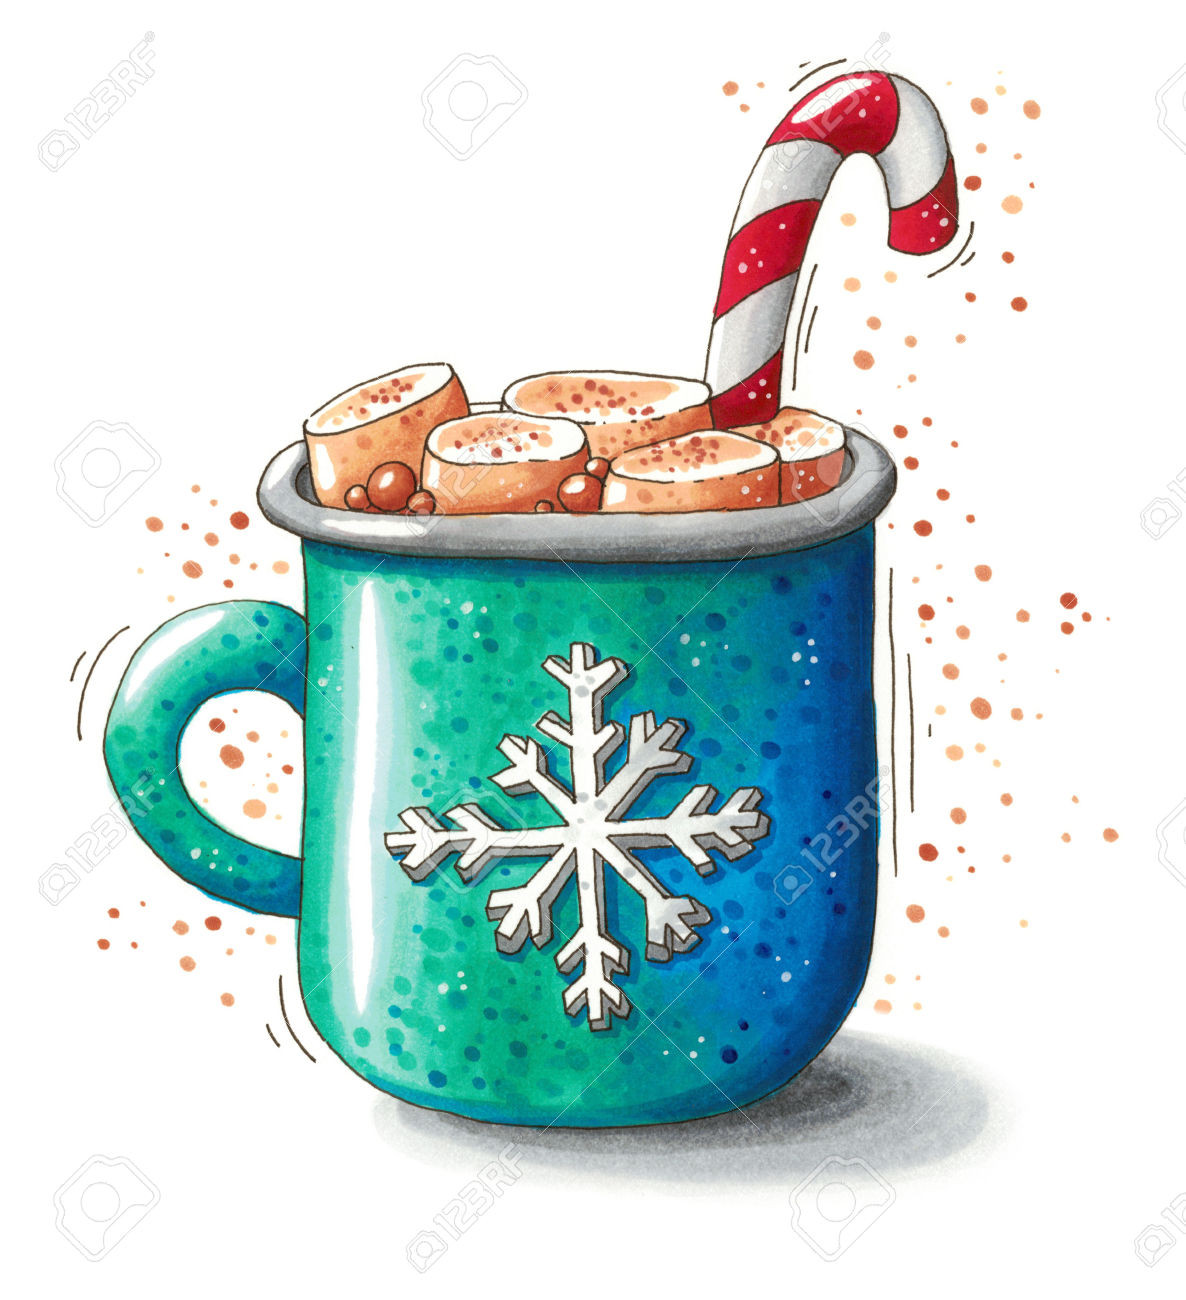 Hot Chocolate Clipart  Snowflake clipart mug Pencil and in color snowflake